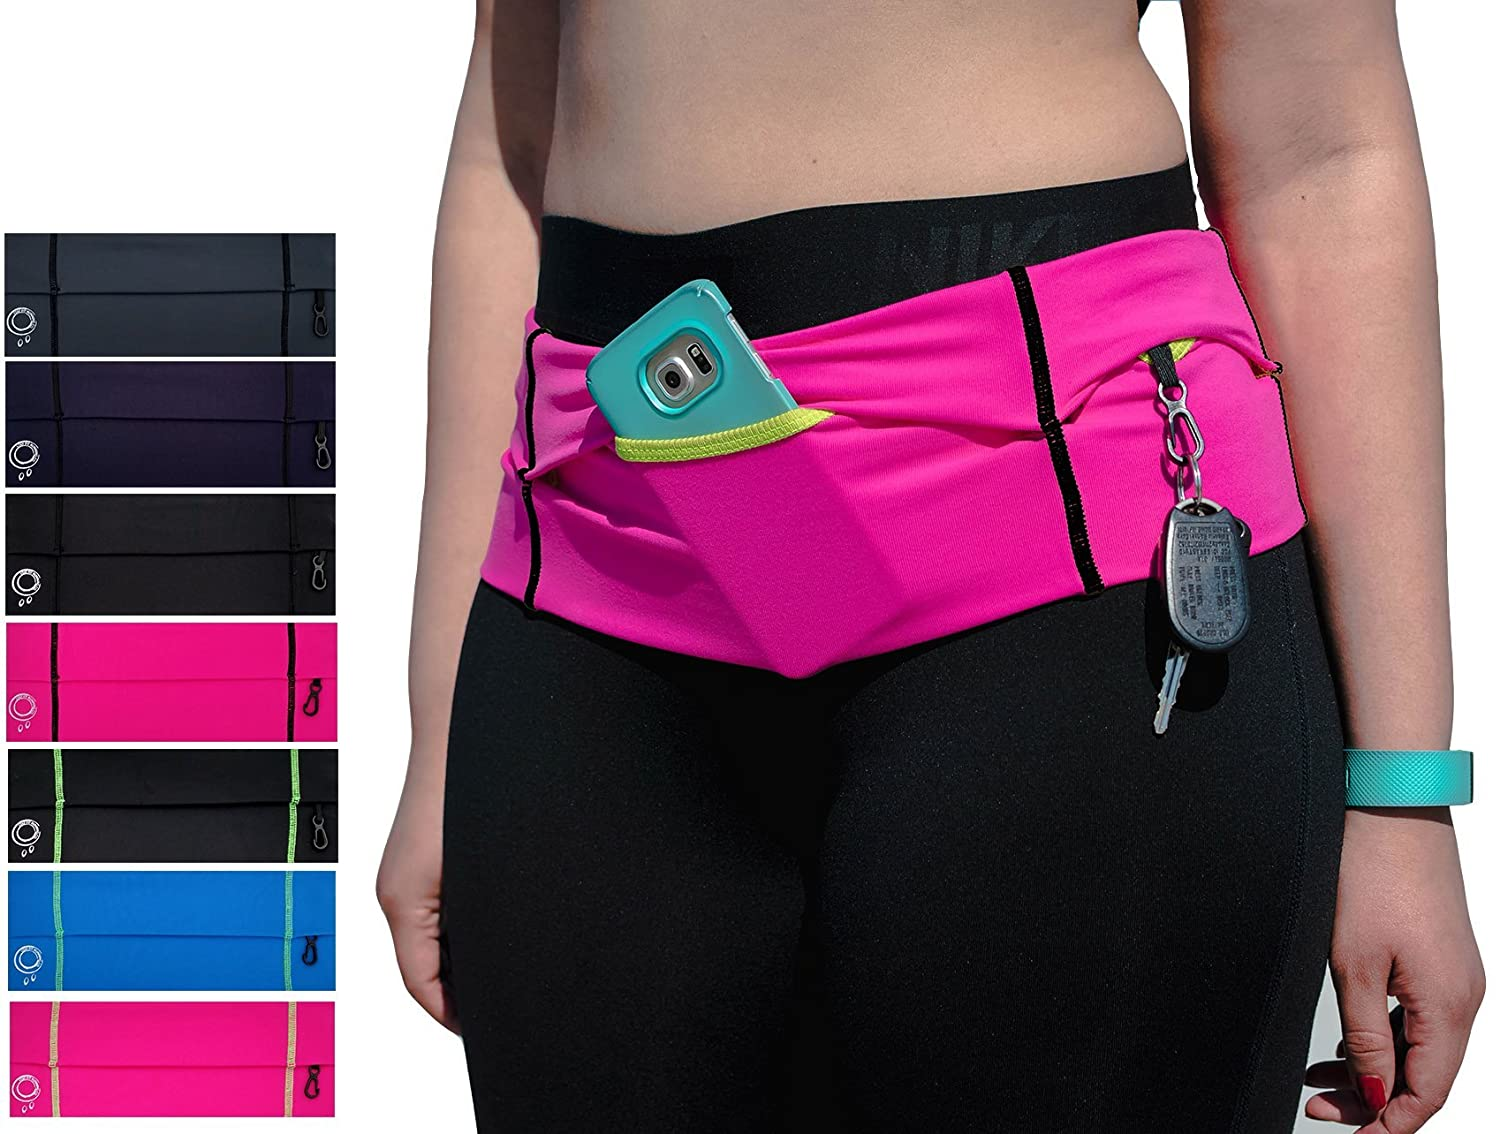 Stay Fit Running Co. Running Belt For iPhone 8. Made for women Ethically Made in the USA